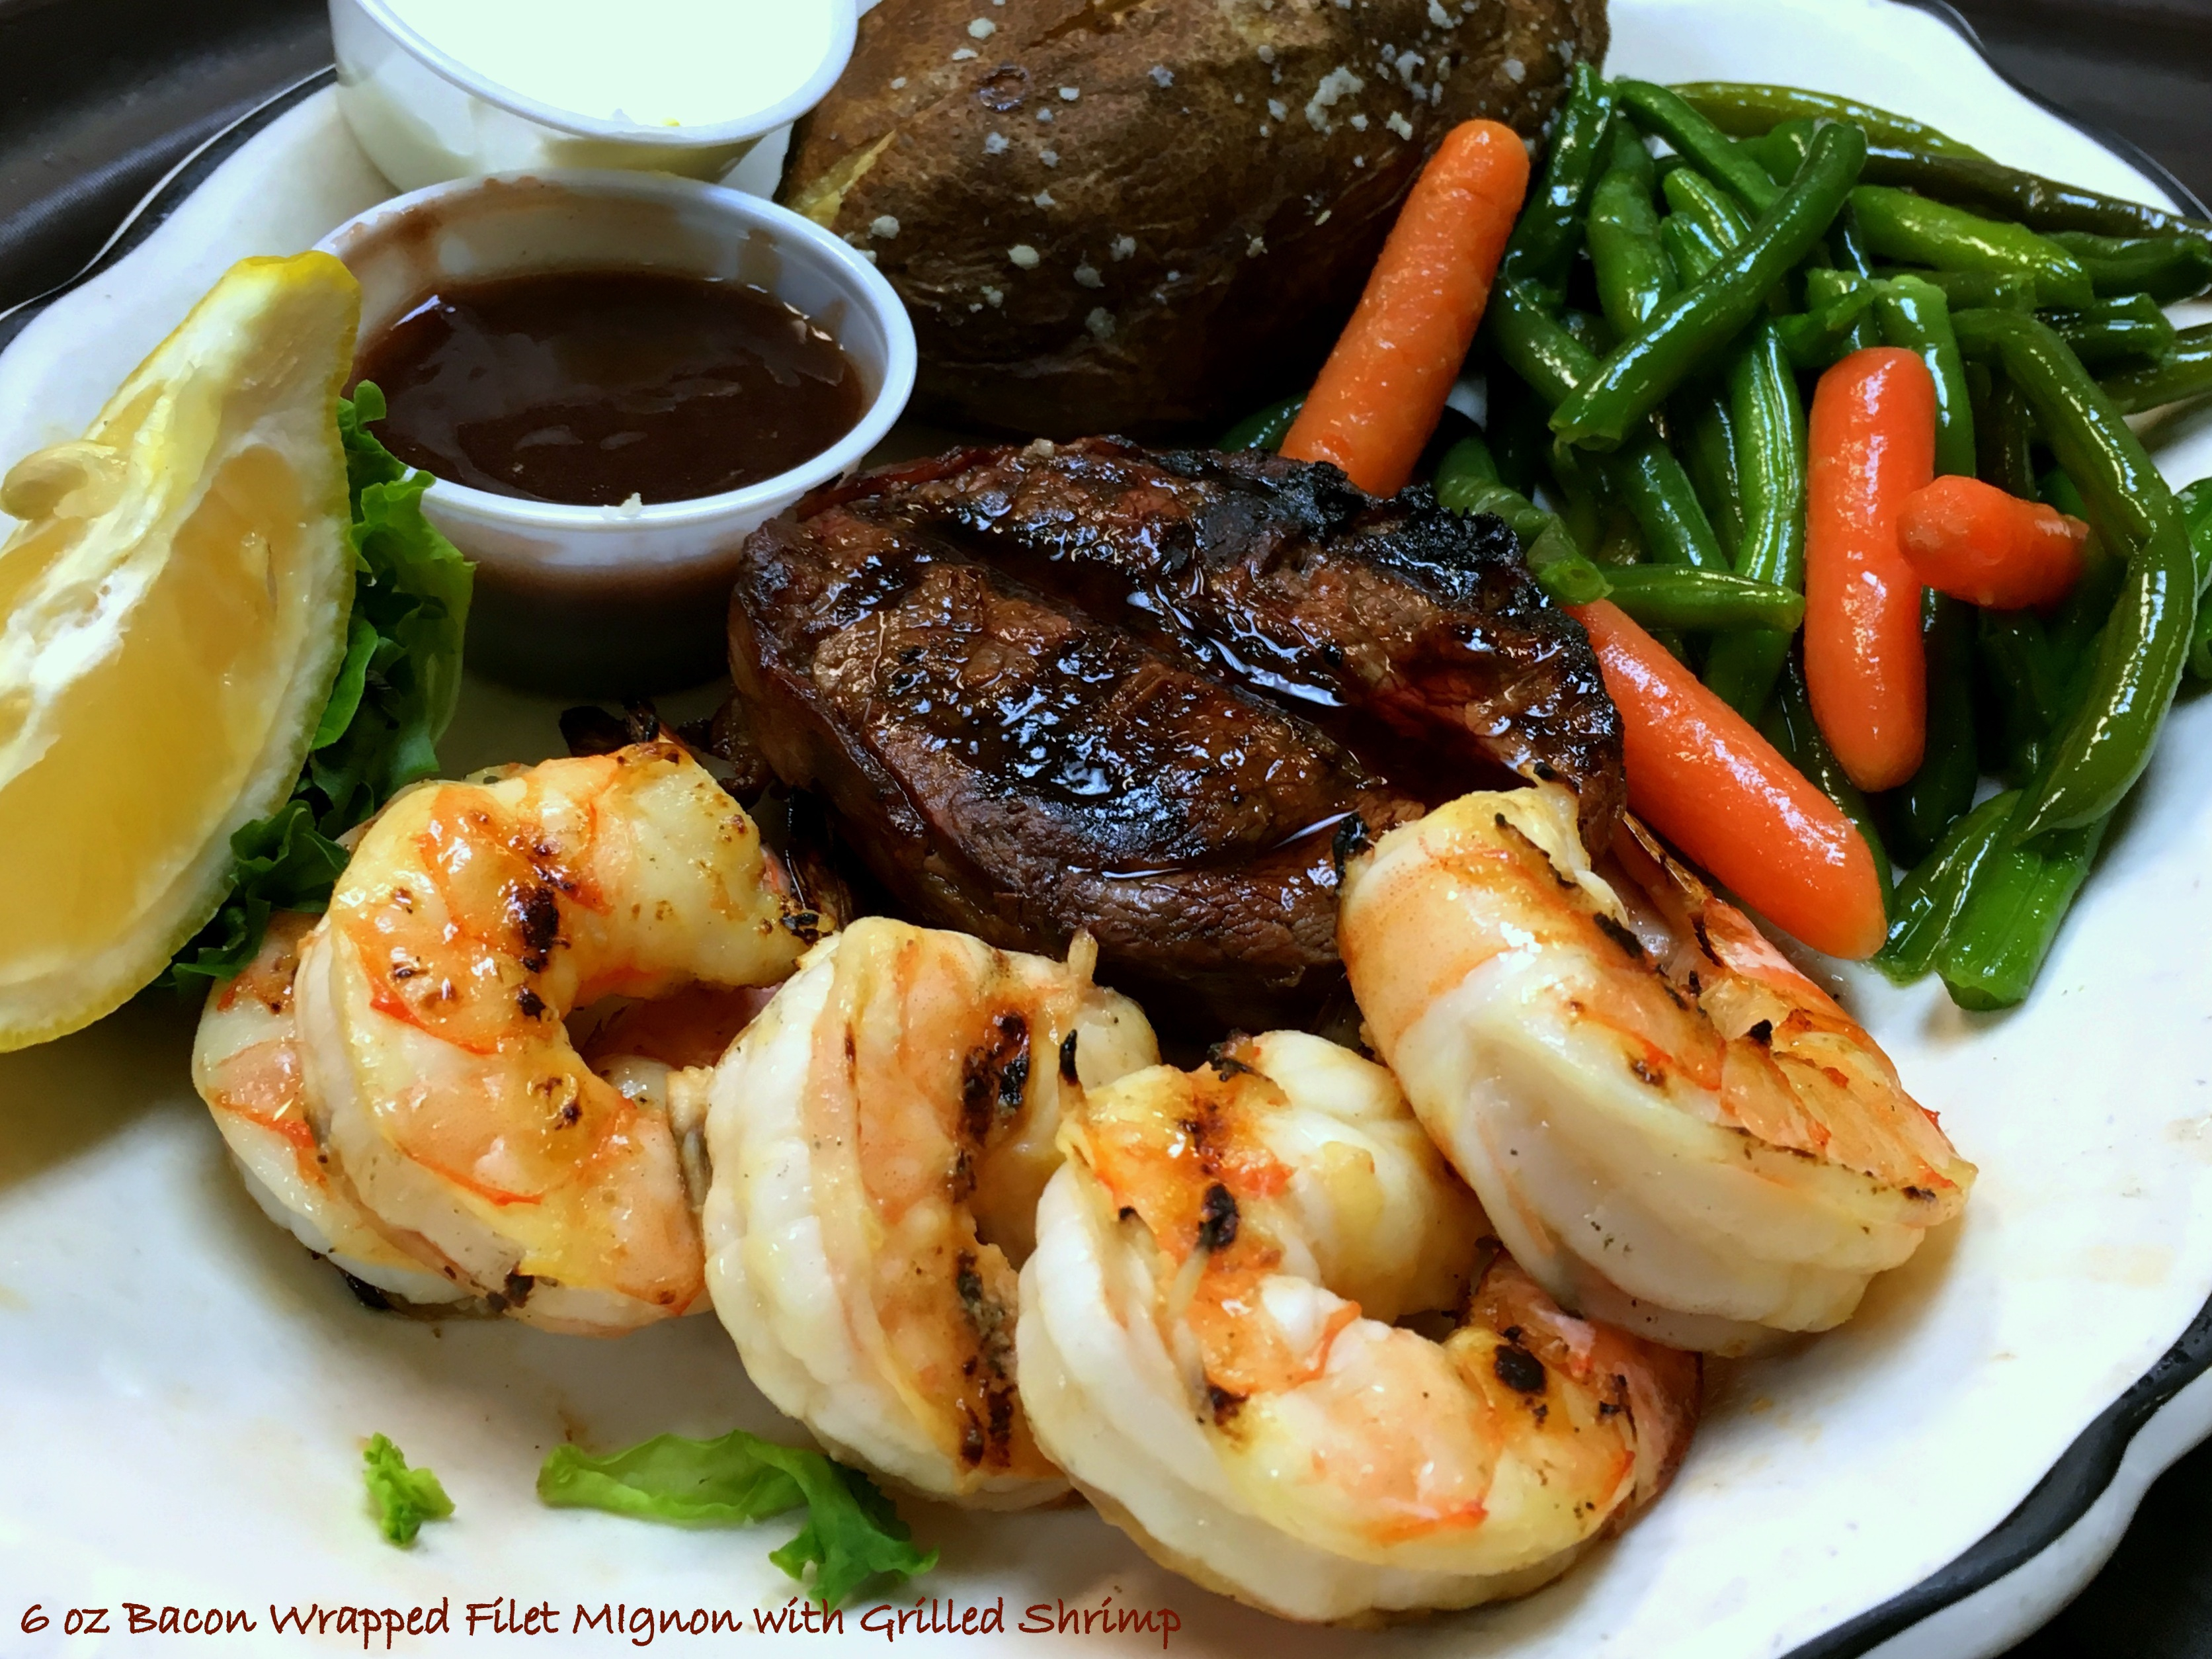 IMG_0708_Filet & Shrimp